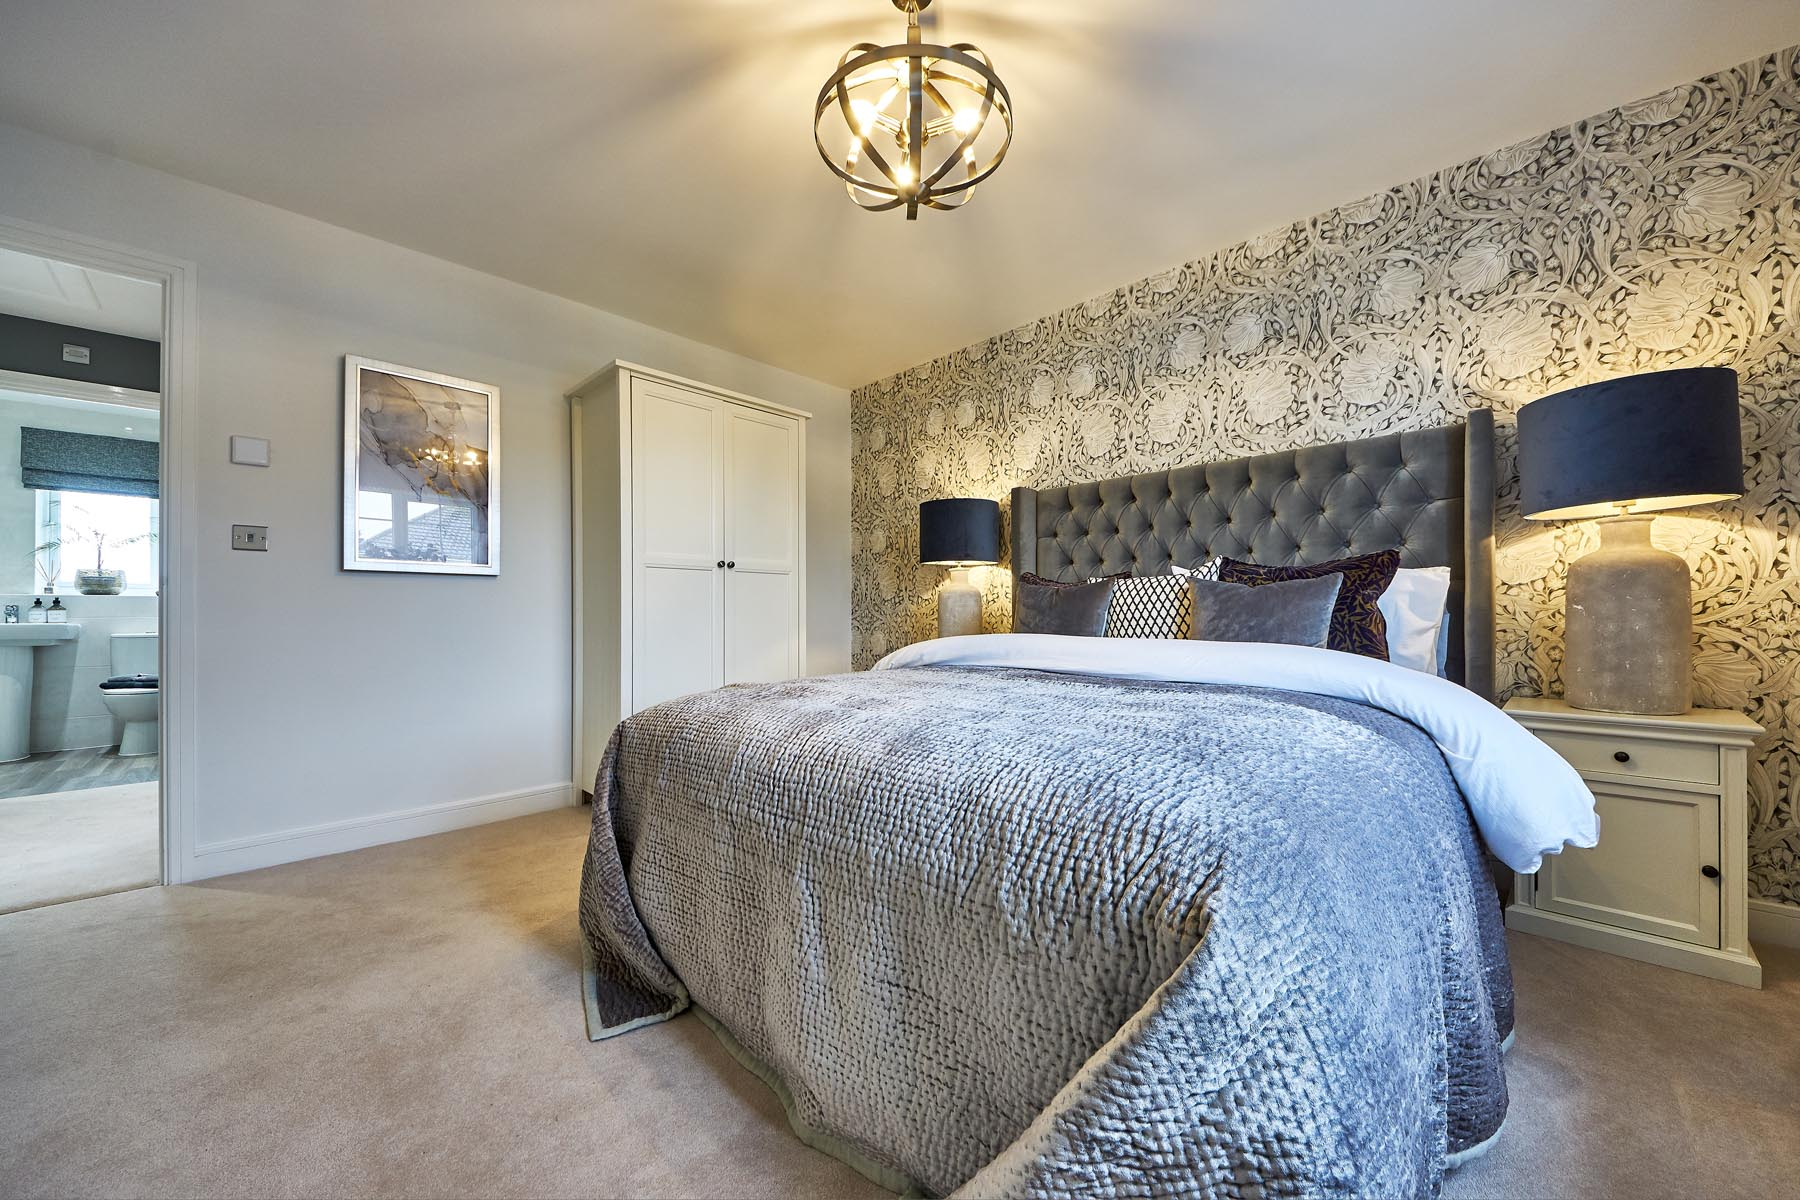 Woodland Edge - Shelford - Master bedroom